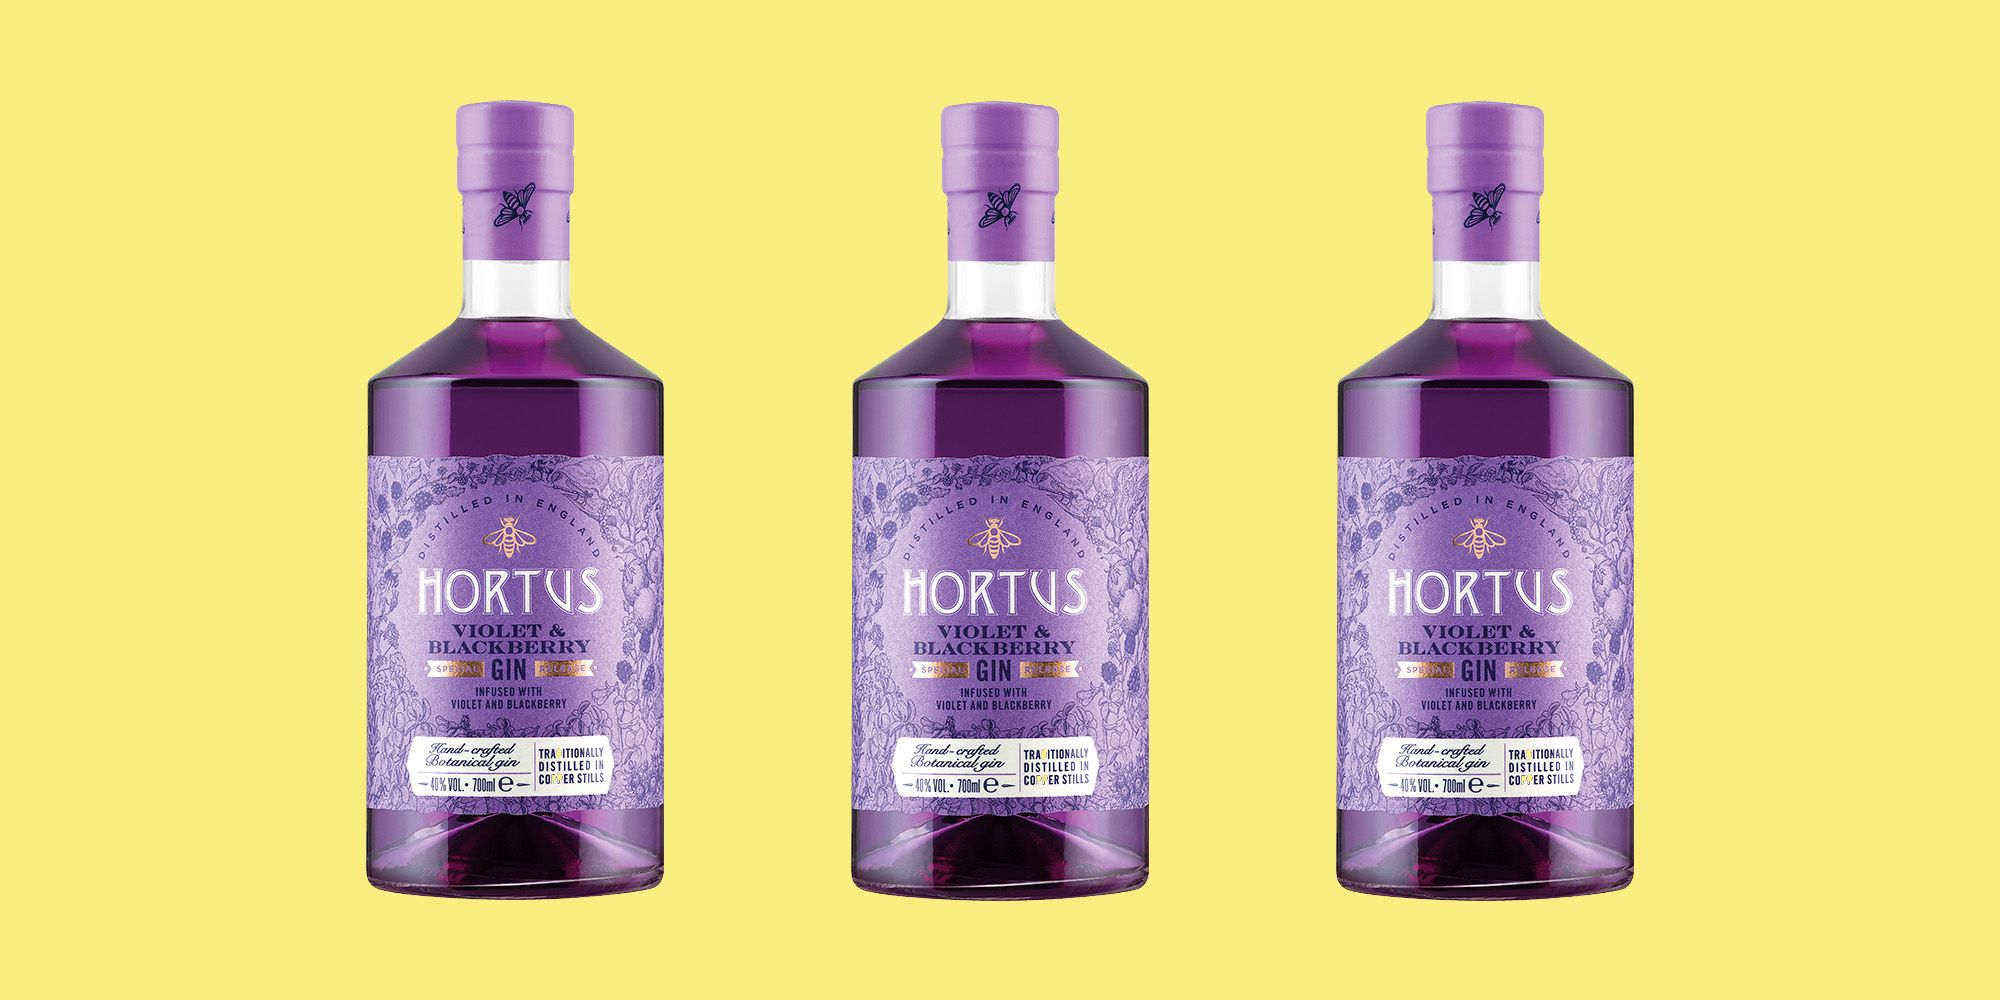 Lidl Has Launched A Brand New Blackberry And Violet Gin Flavour, And You Bet We're Already Making G&Ts